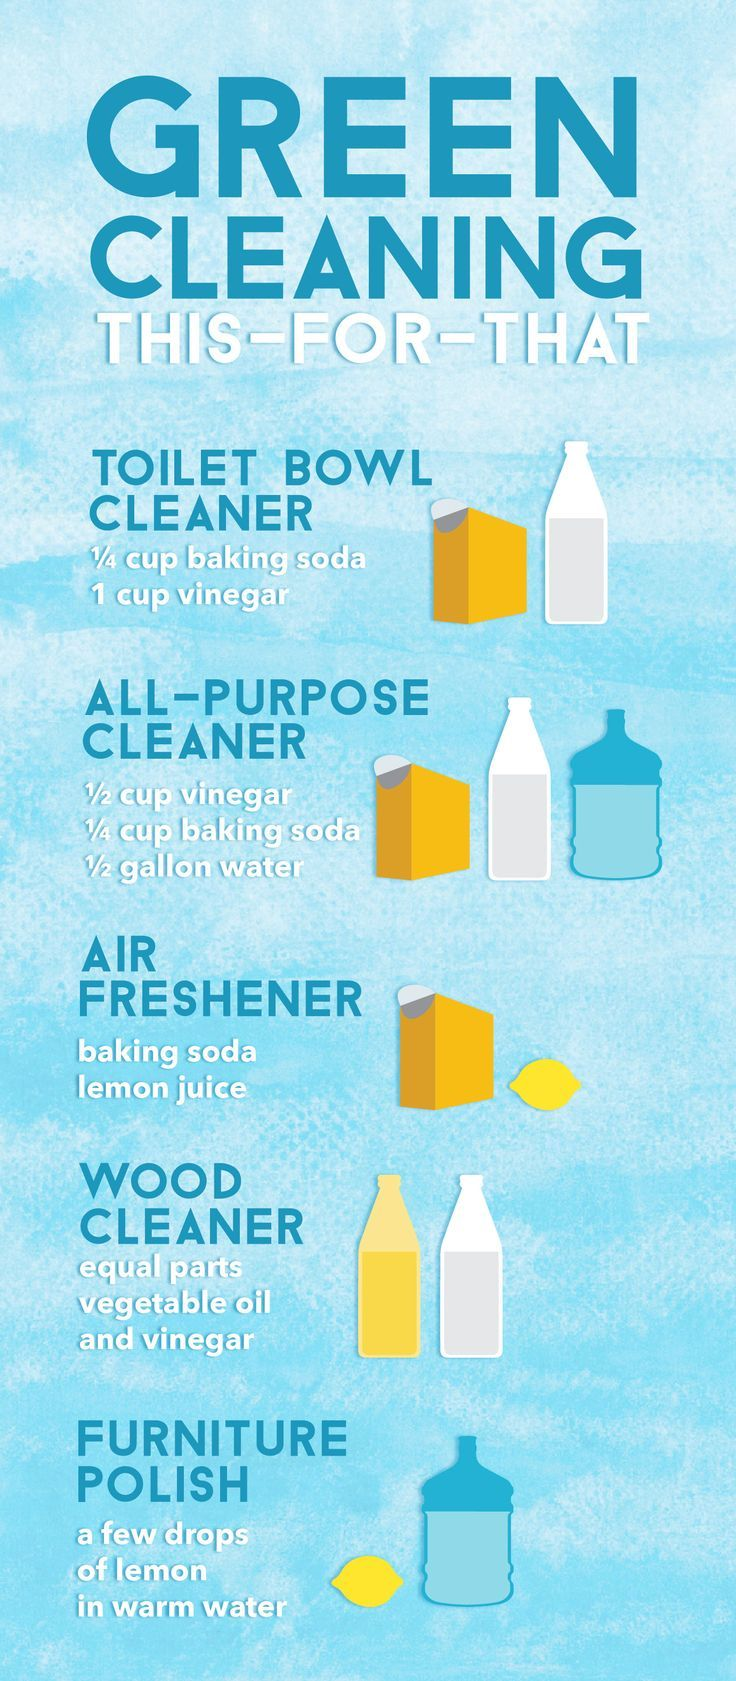 Green Cleaning This For That Toilet Bowl Cleaner All Purpose Cleaner Air Freshener Wood Cleaner Spring Cleaning Hacks Cleaning Hacks Green Cleaning